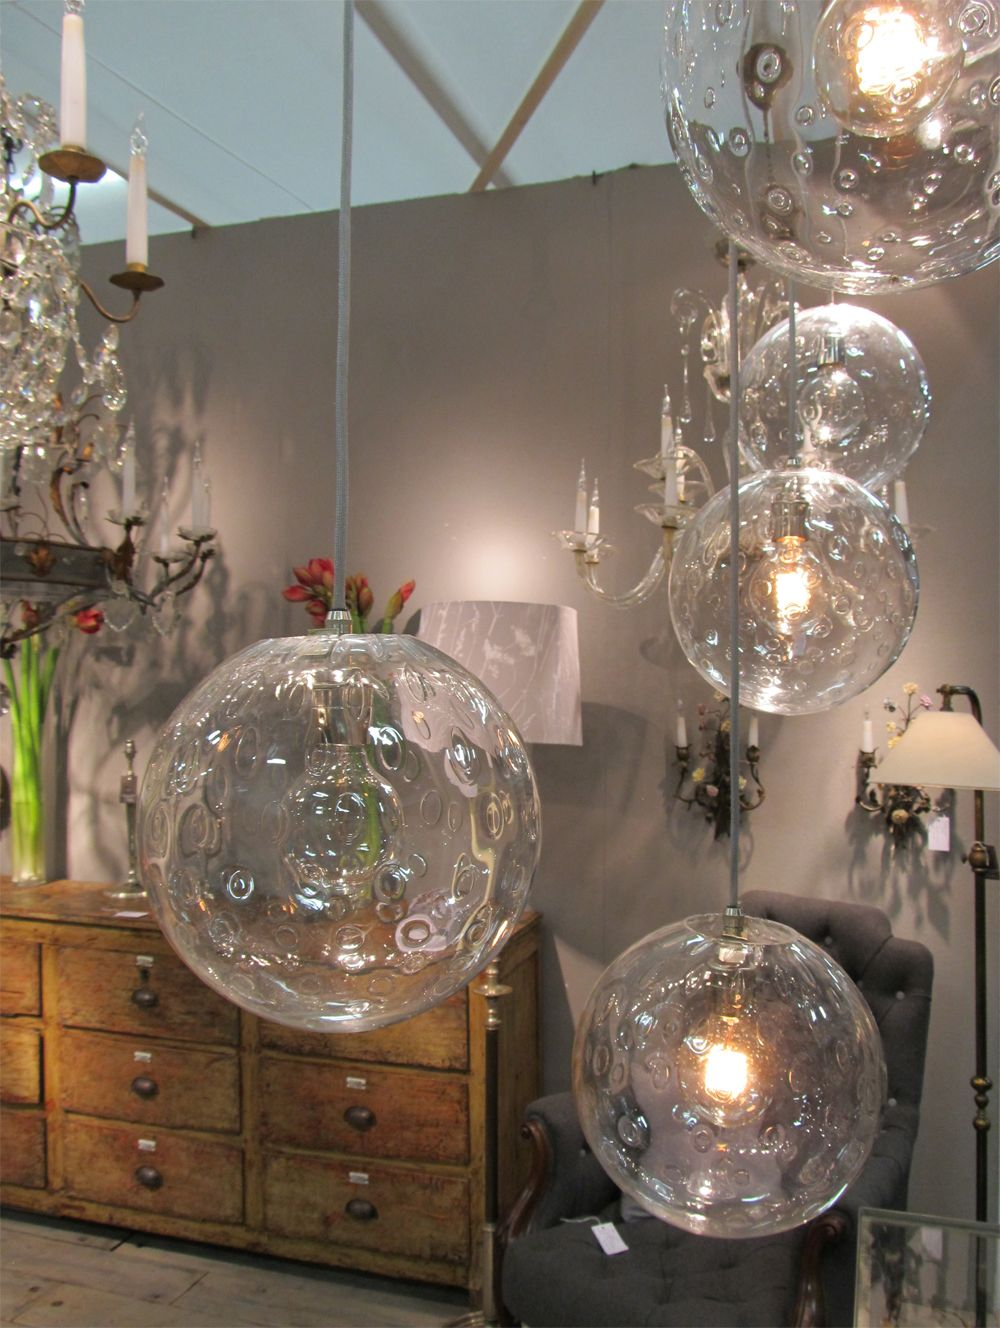 eclectic lighting fixtures. Eclectic Lighting From 1840 To 1970 Norfolk Decorative Antiques At The Fair Fixtures T